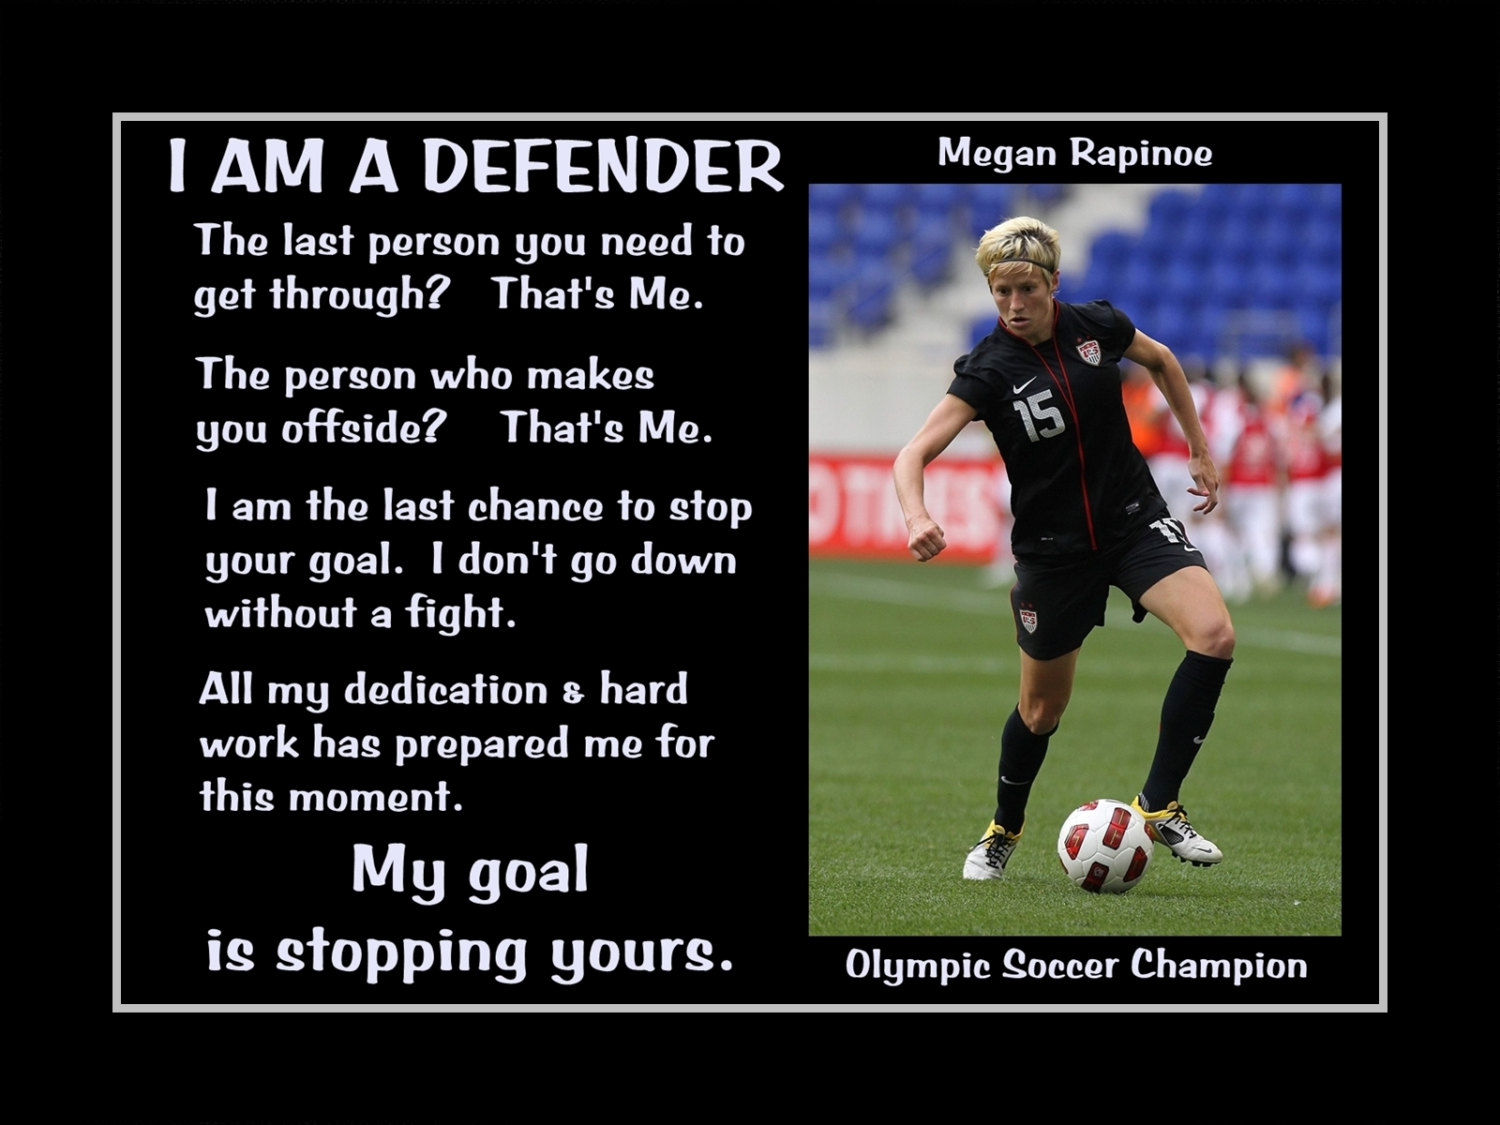 Soccer Quote Arleyart Megan Rapinoe Soccer Defender Motivation Poster